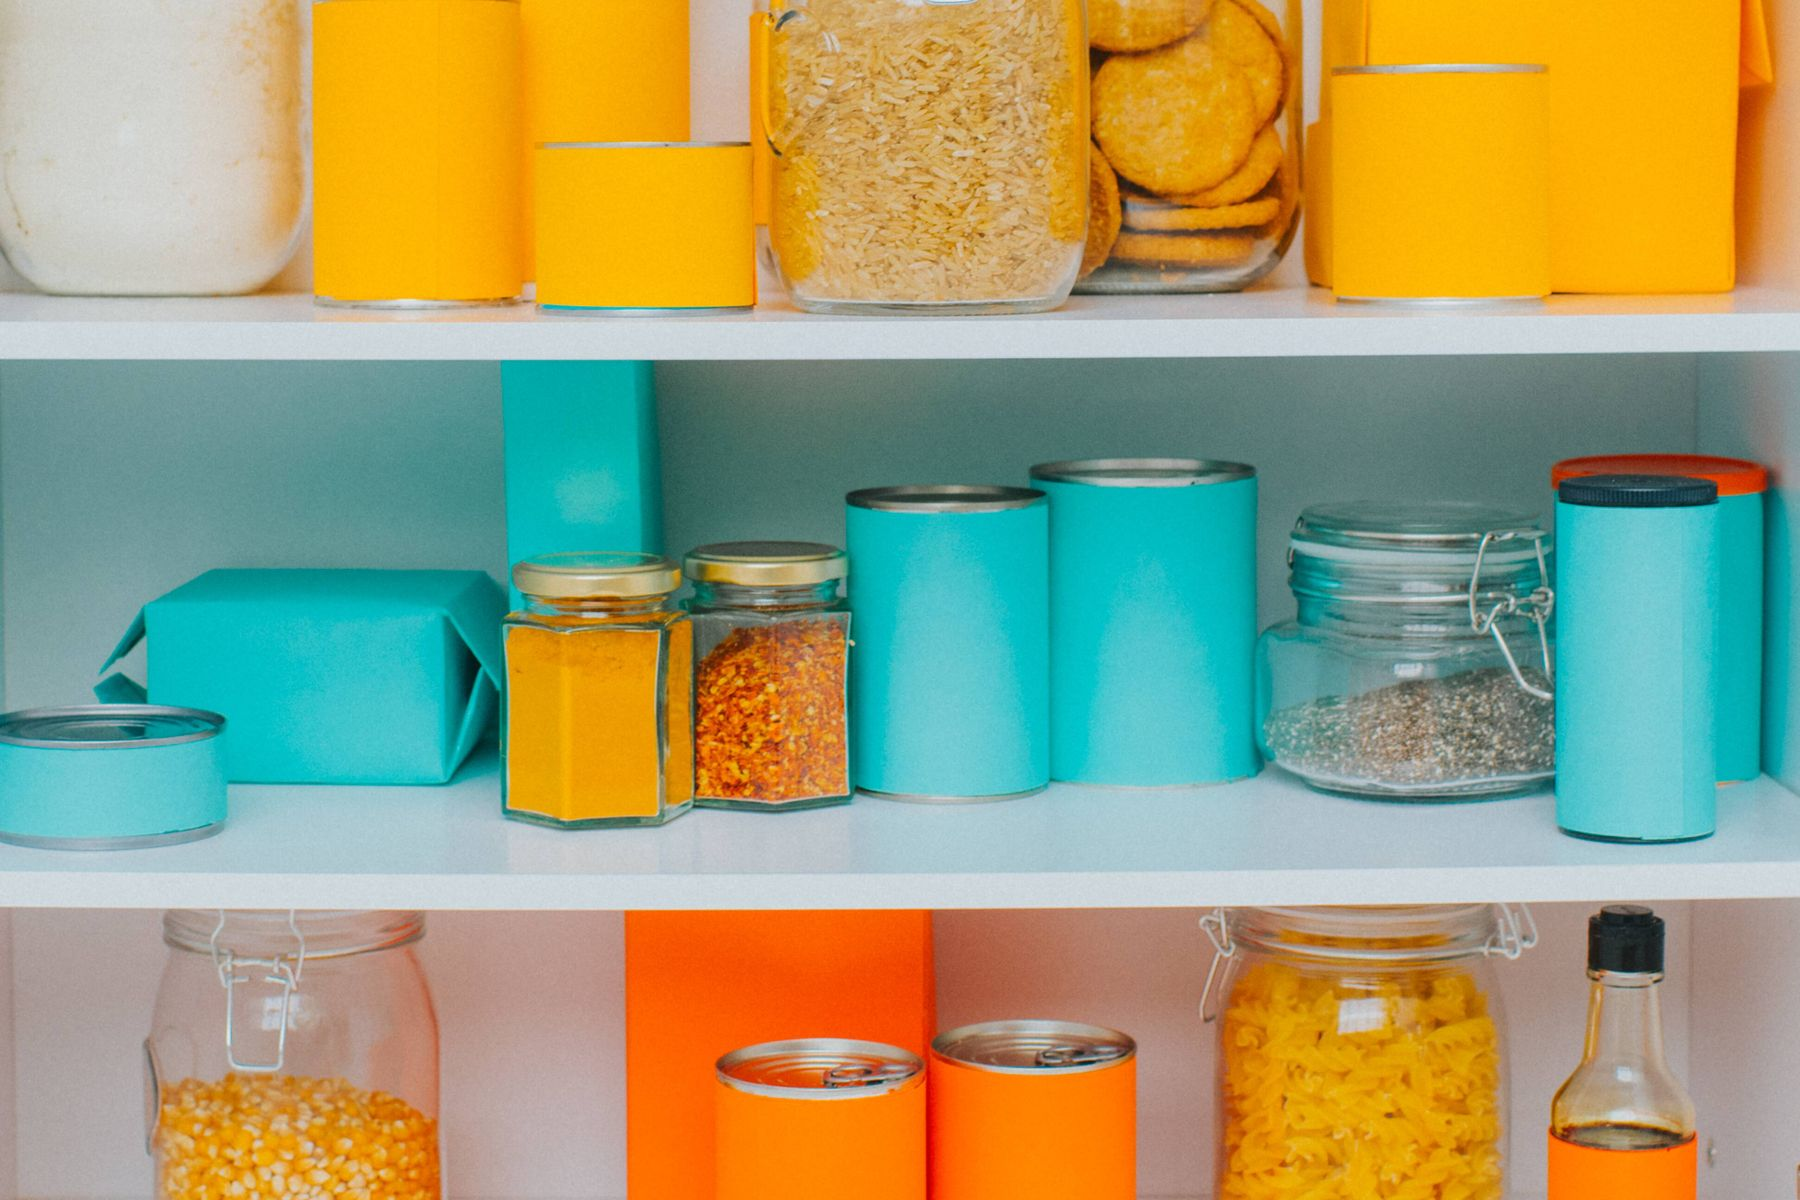 Tidy pantry shelves filled with containers for kitchen storage solutions: how to keep your kitchen clean and tidy